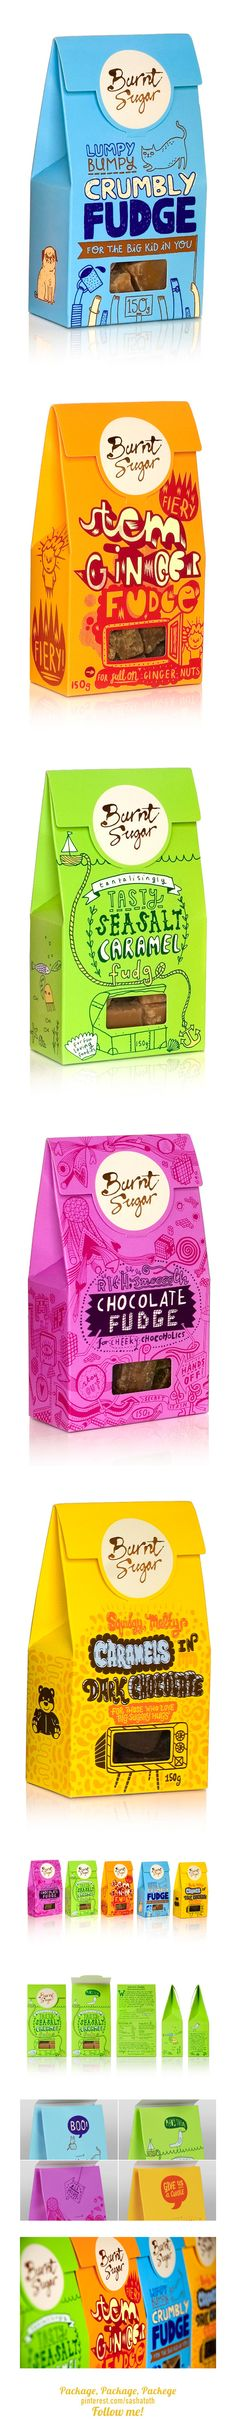 Burnt Sugar packaging *** Burnt Sugar is a boutique brand of fudge with humble beginnings.studio, via Behance Sugar Packaging, Branding And Packaging, Cool Packaging, Chocolate Packaging, Beverage Packaging, Print Packaging, Pouch Packaging, Candy Packaging, Packaging Ideas